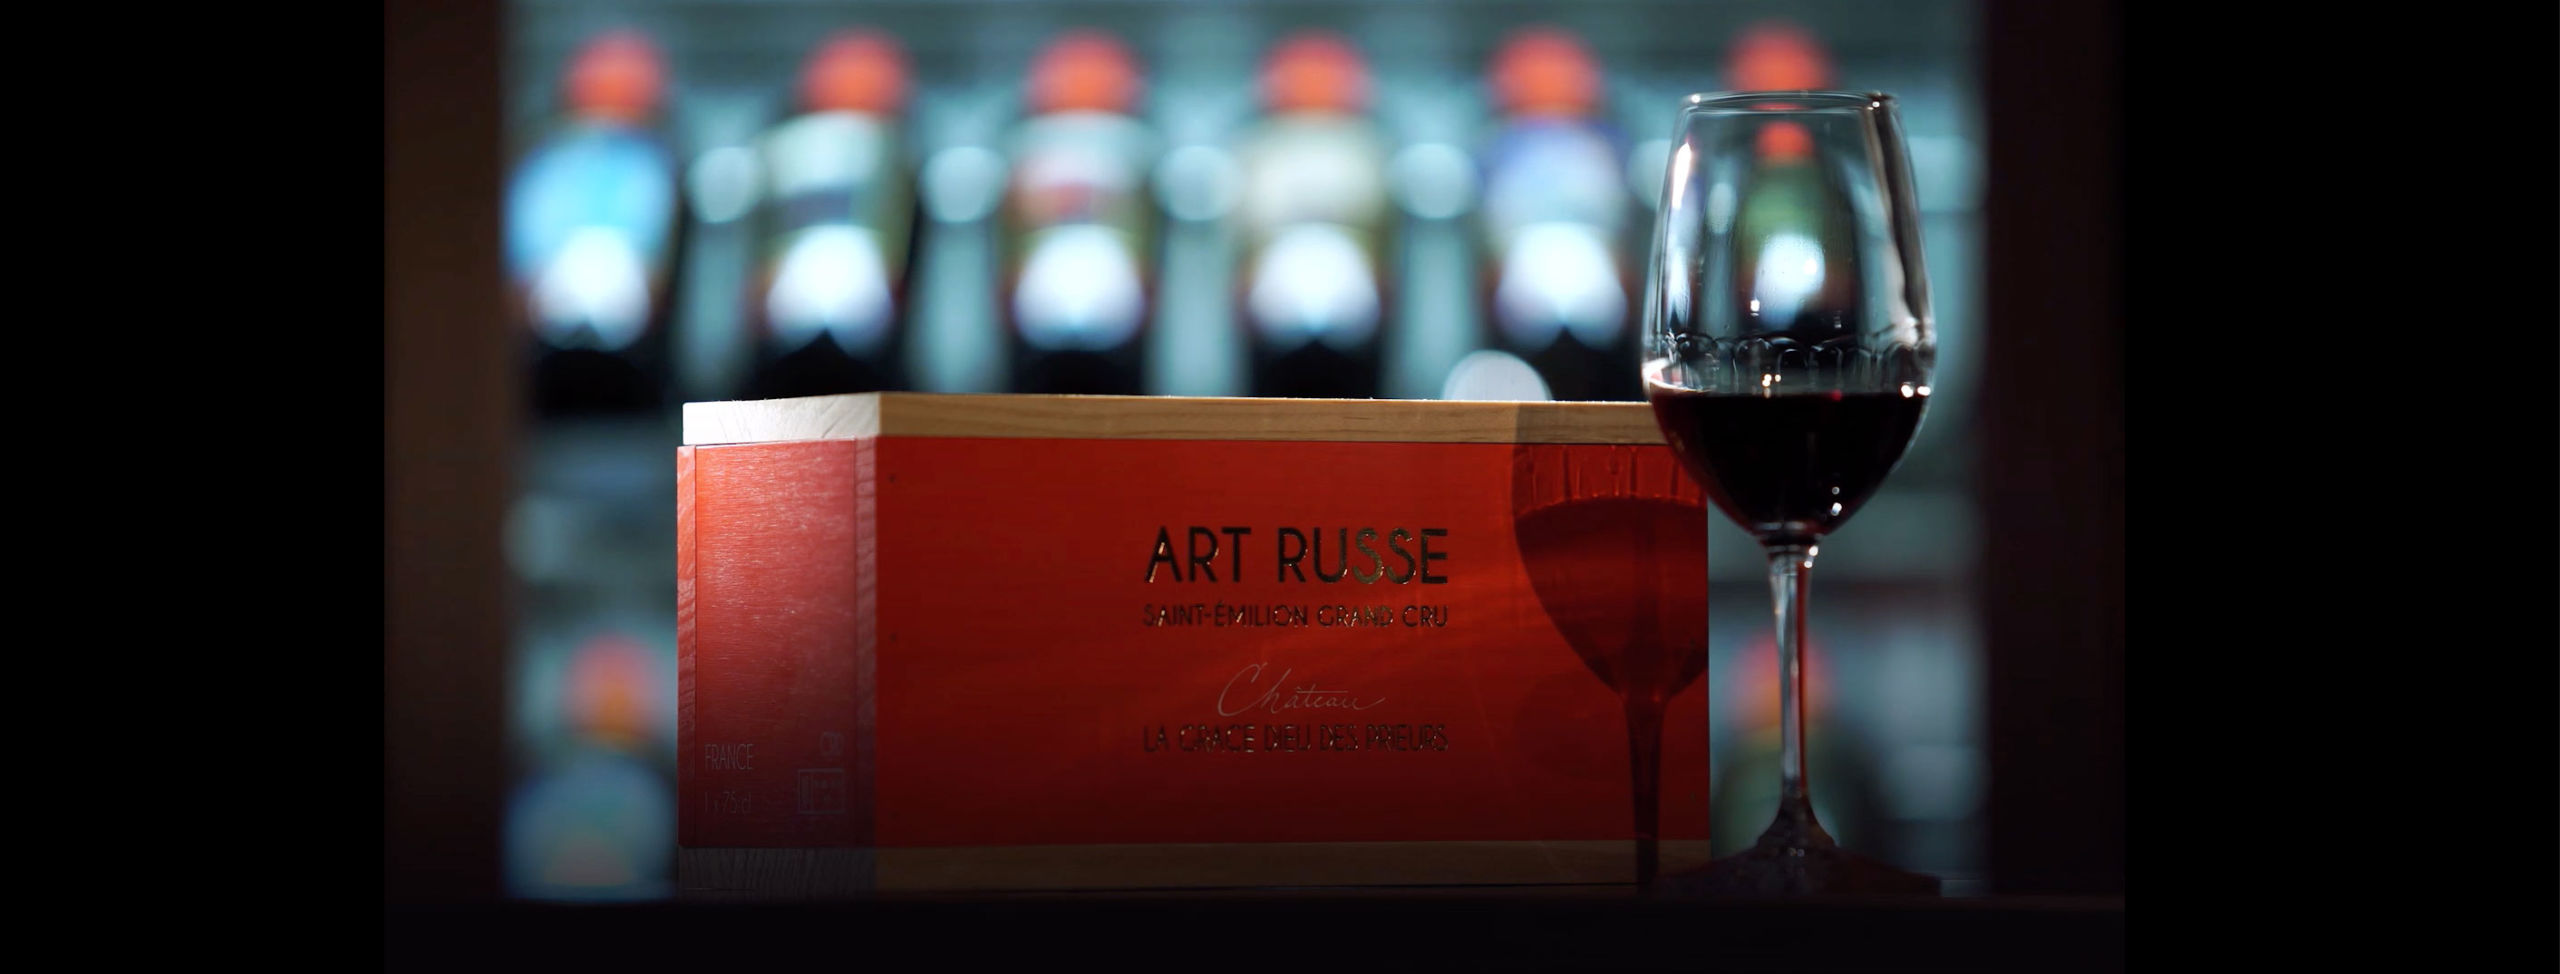 ART RUSSE AD CAMPAIGN NOMINATED FOR WORLD MEDIA AWARDS